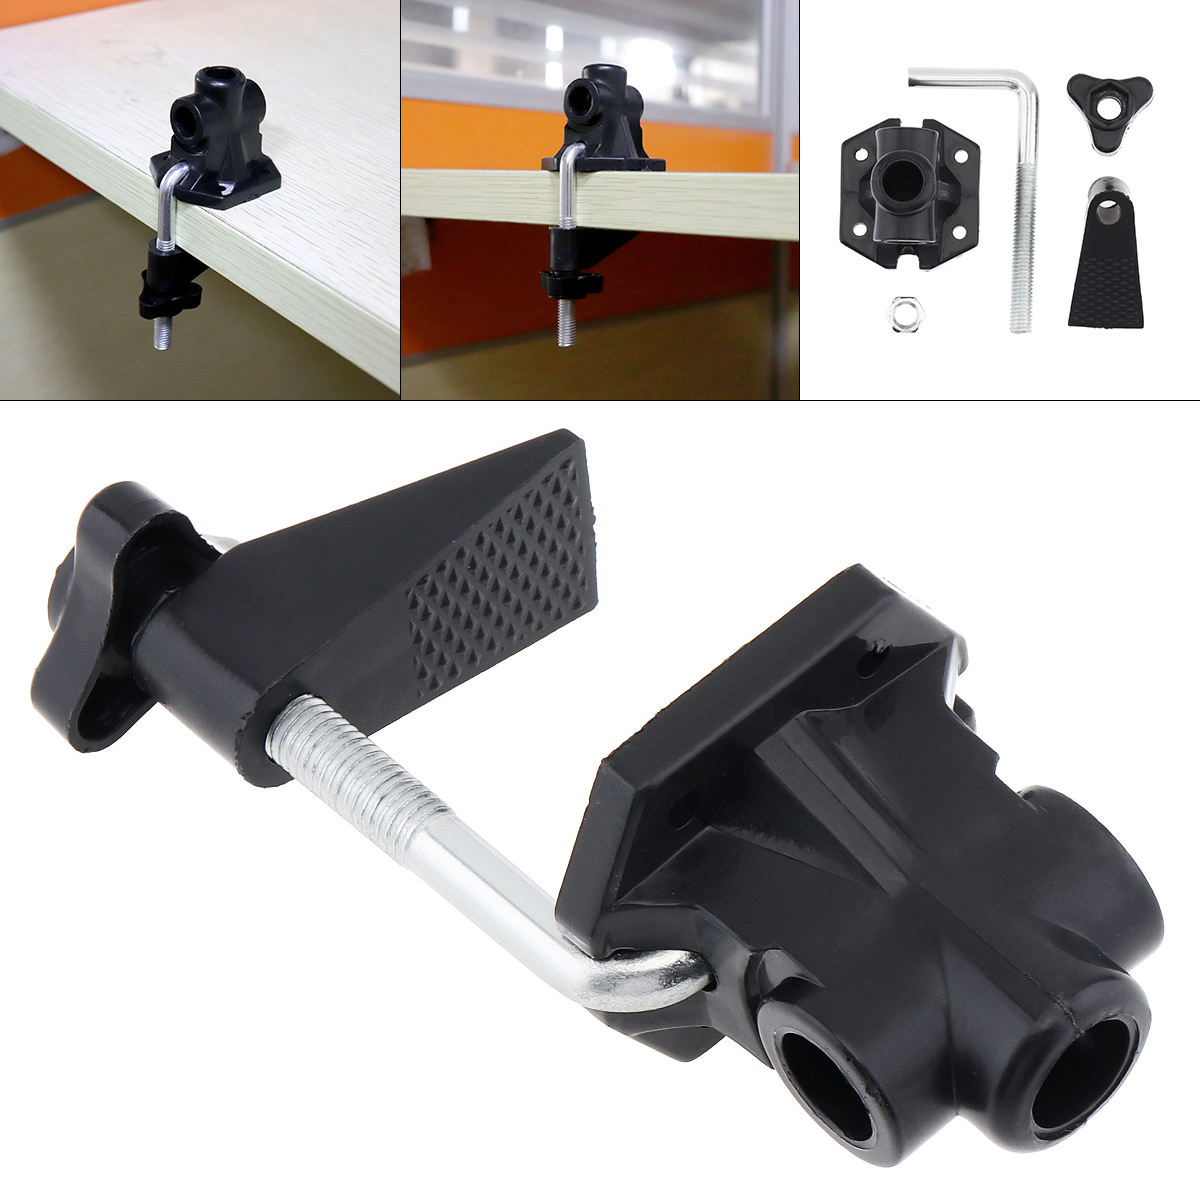 Rotating Clip Slider Clamp Holder Mic Stand Bracket Clamp Bracket Pole Fixing Bracket with Clamp Practical For Desk Lamp Clip Screw Type DIY Fittings